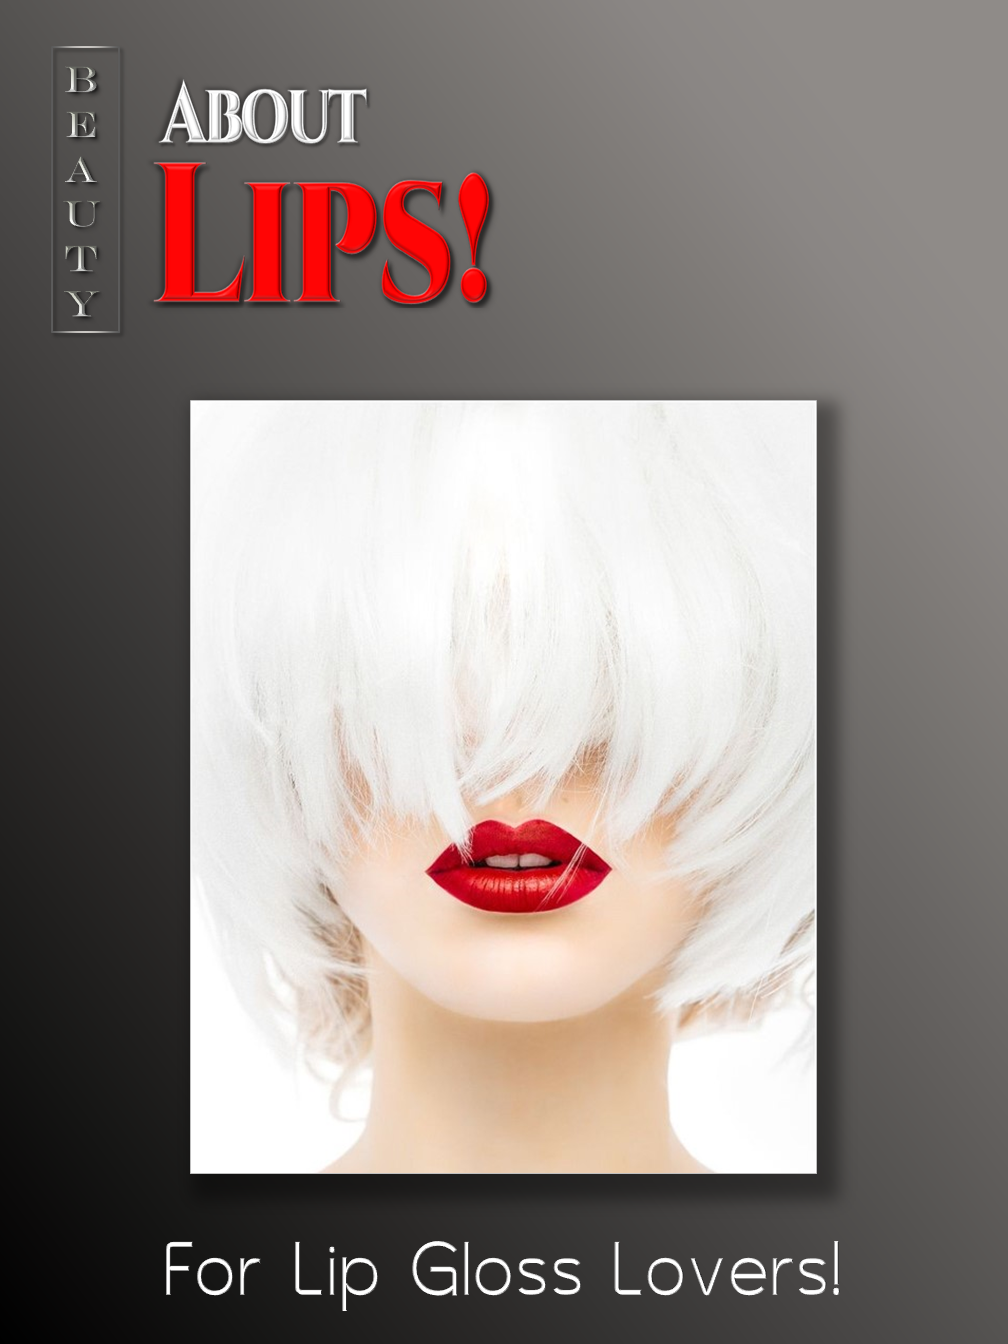 About Lips